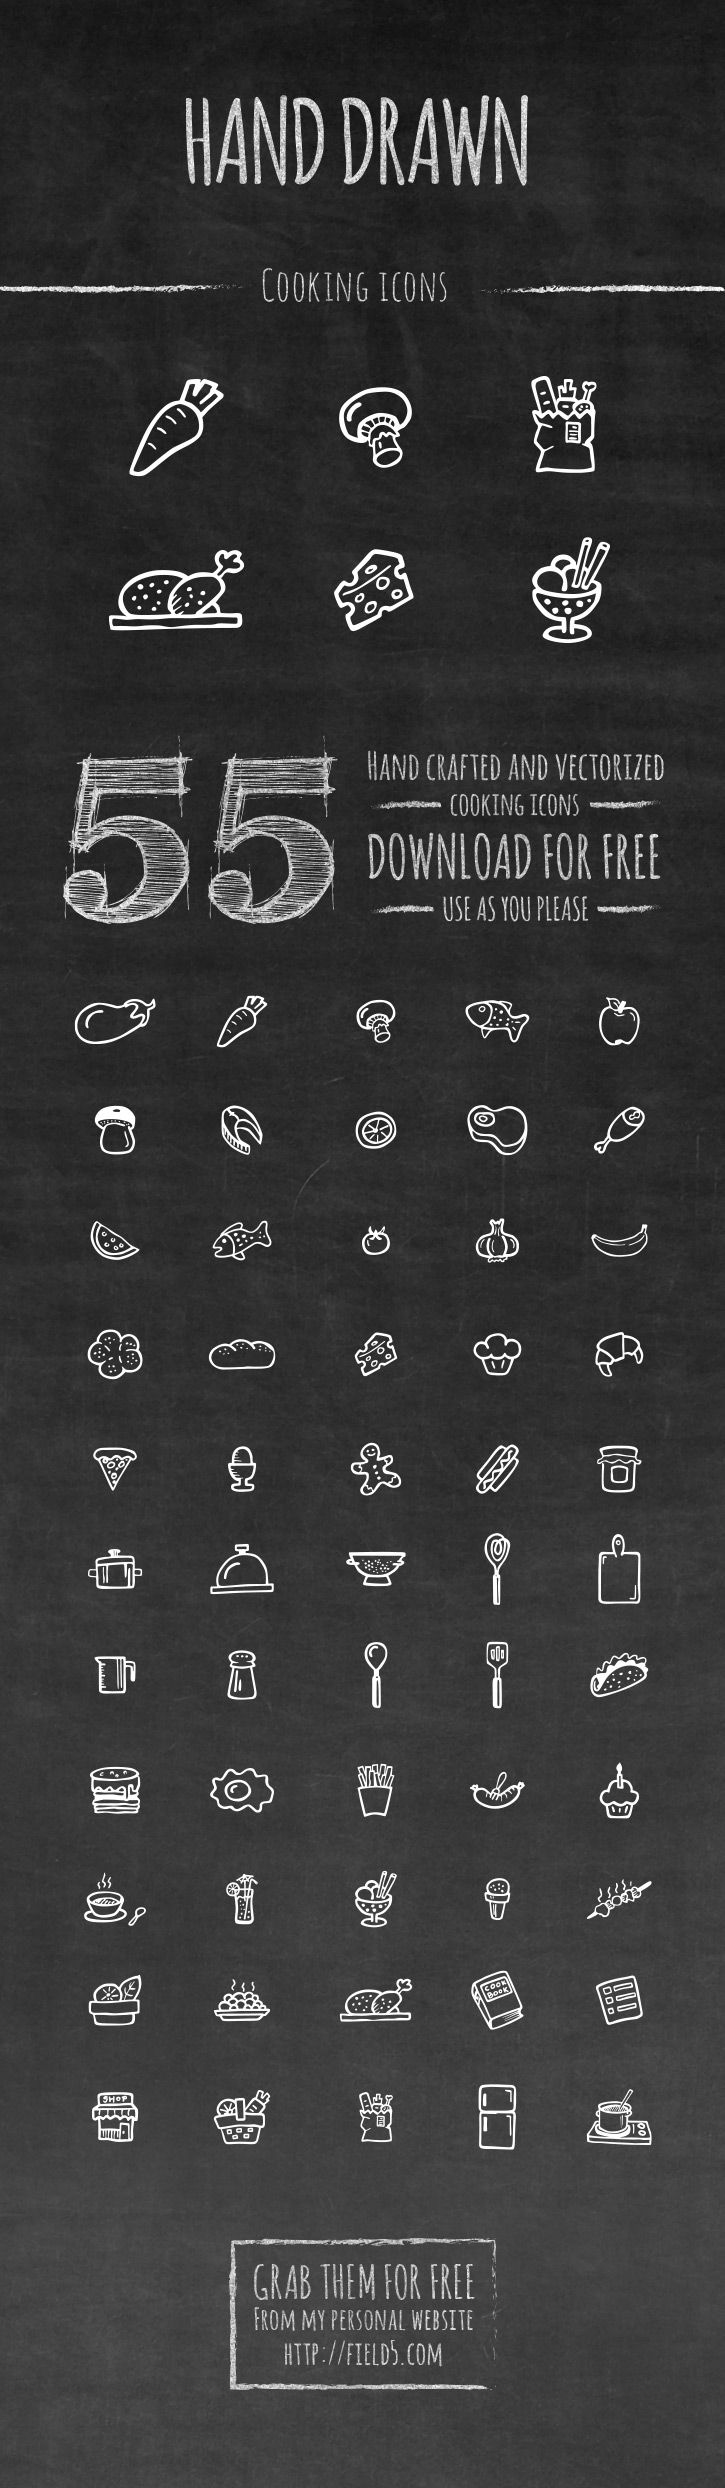 Cooking icons set - download for free. Grab them while they are still hot! Free for both commercial and personal use, no need to credit but if you choose to do so I will be super happy:-) There's more! ...